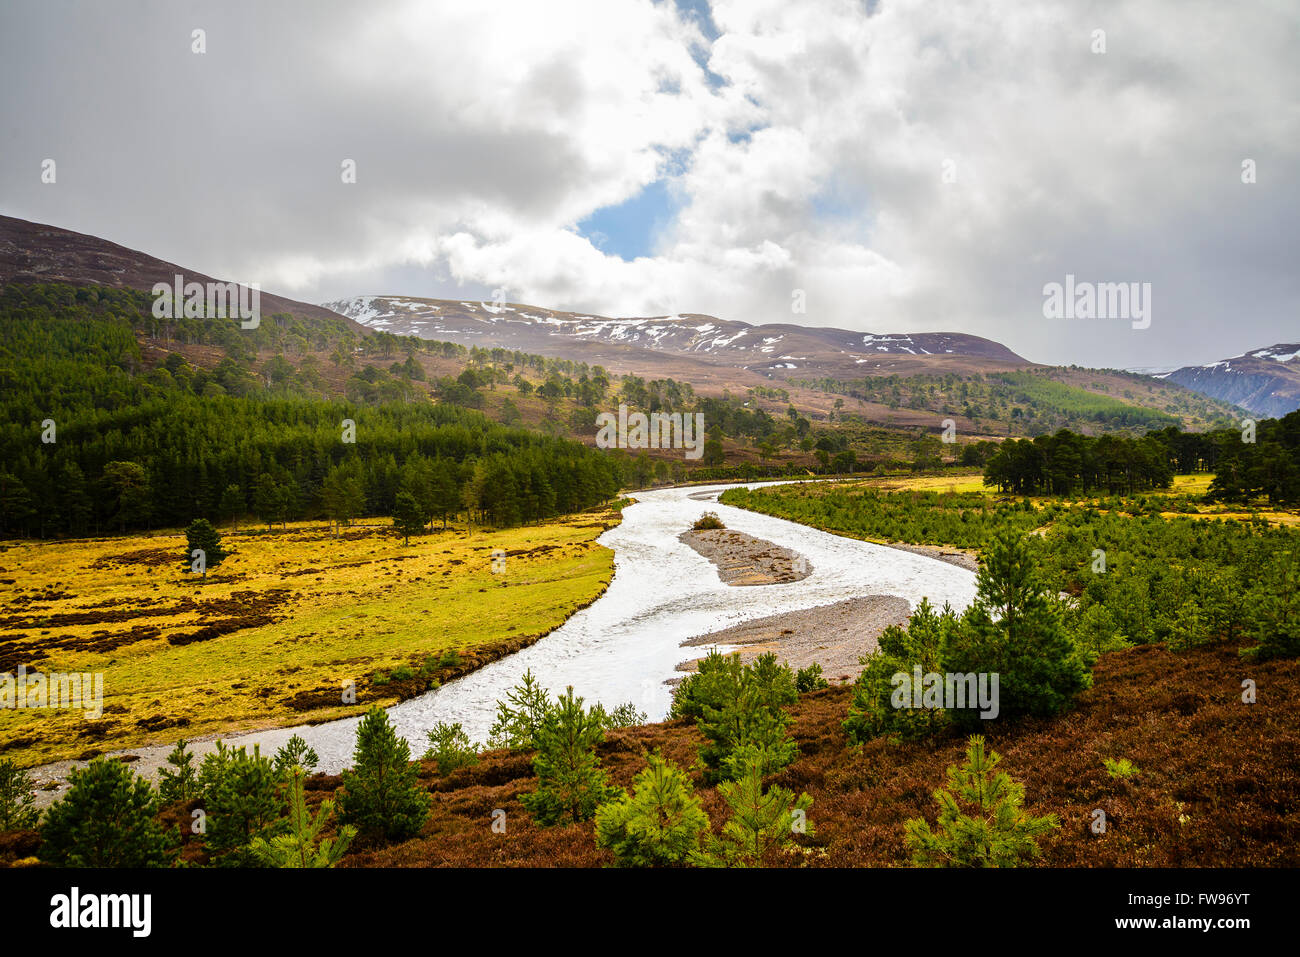 View over River Feshie in Glen Feshie Cairngorms National Park Highland Scotland - Stock Image